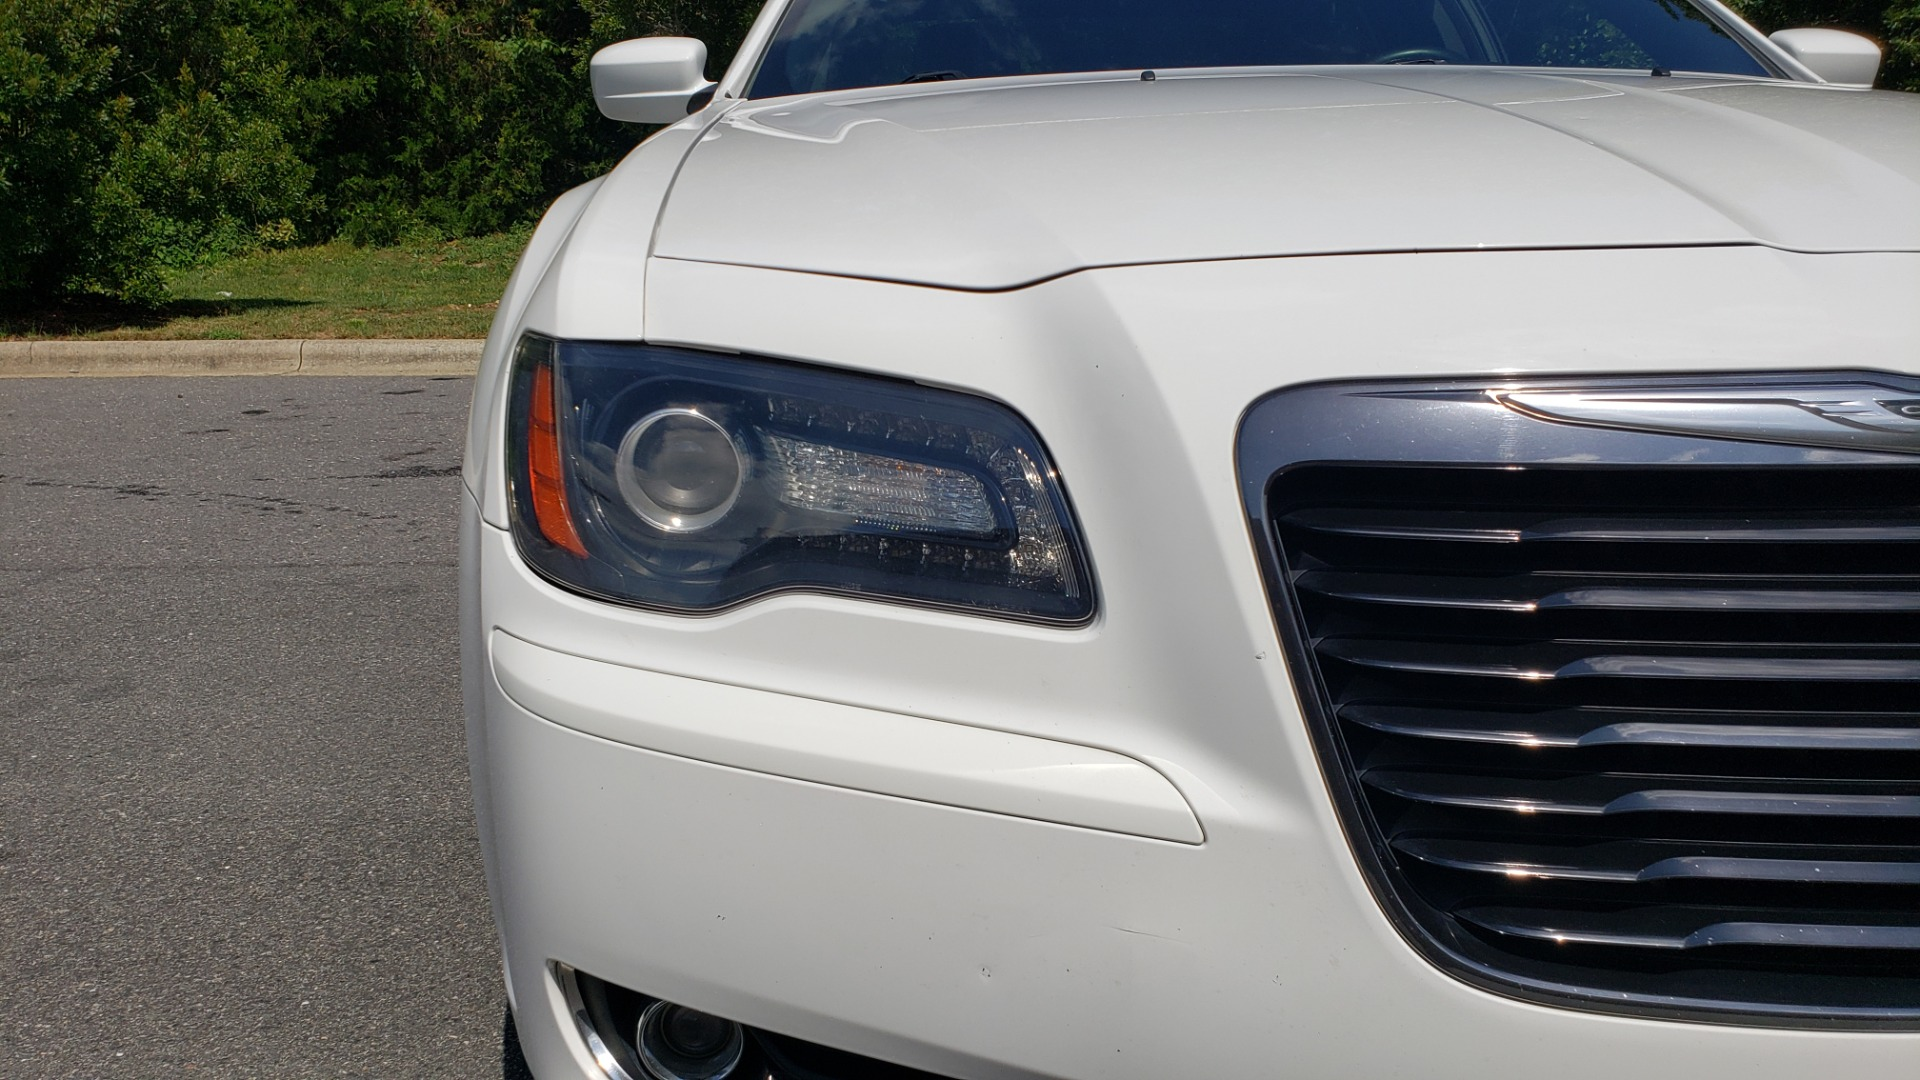 Used 2014 Chrysler 300 S / AWD / NAV / PANO-ROOF / HTD STS / BEATS SOUND / REARVIEW for sale Sold at Formula Imports in Charlotte NC 28227 19